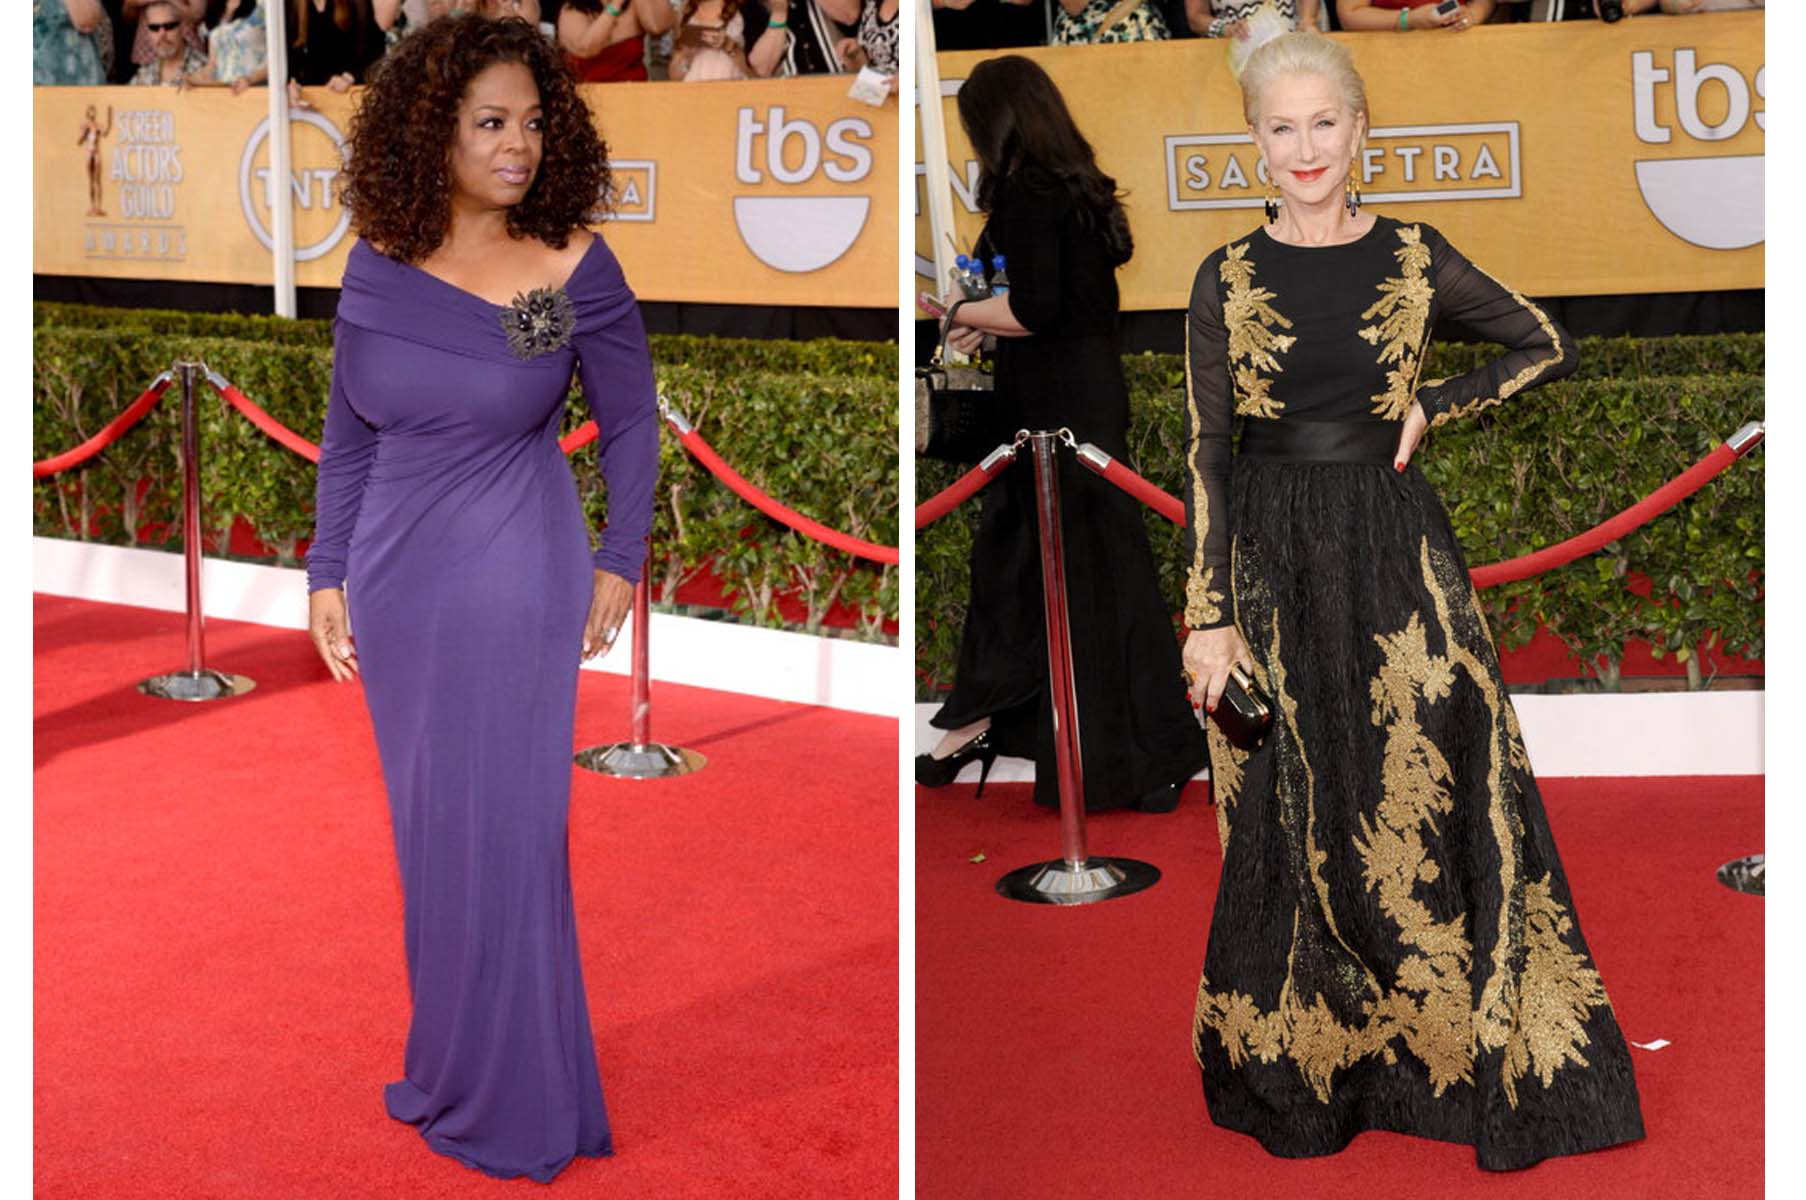 Oprah Winfrey (left) and Helen Mirren (right) at the Screen Actors Guild awards. (Photo: SAG)